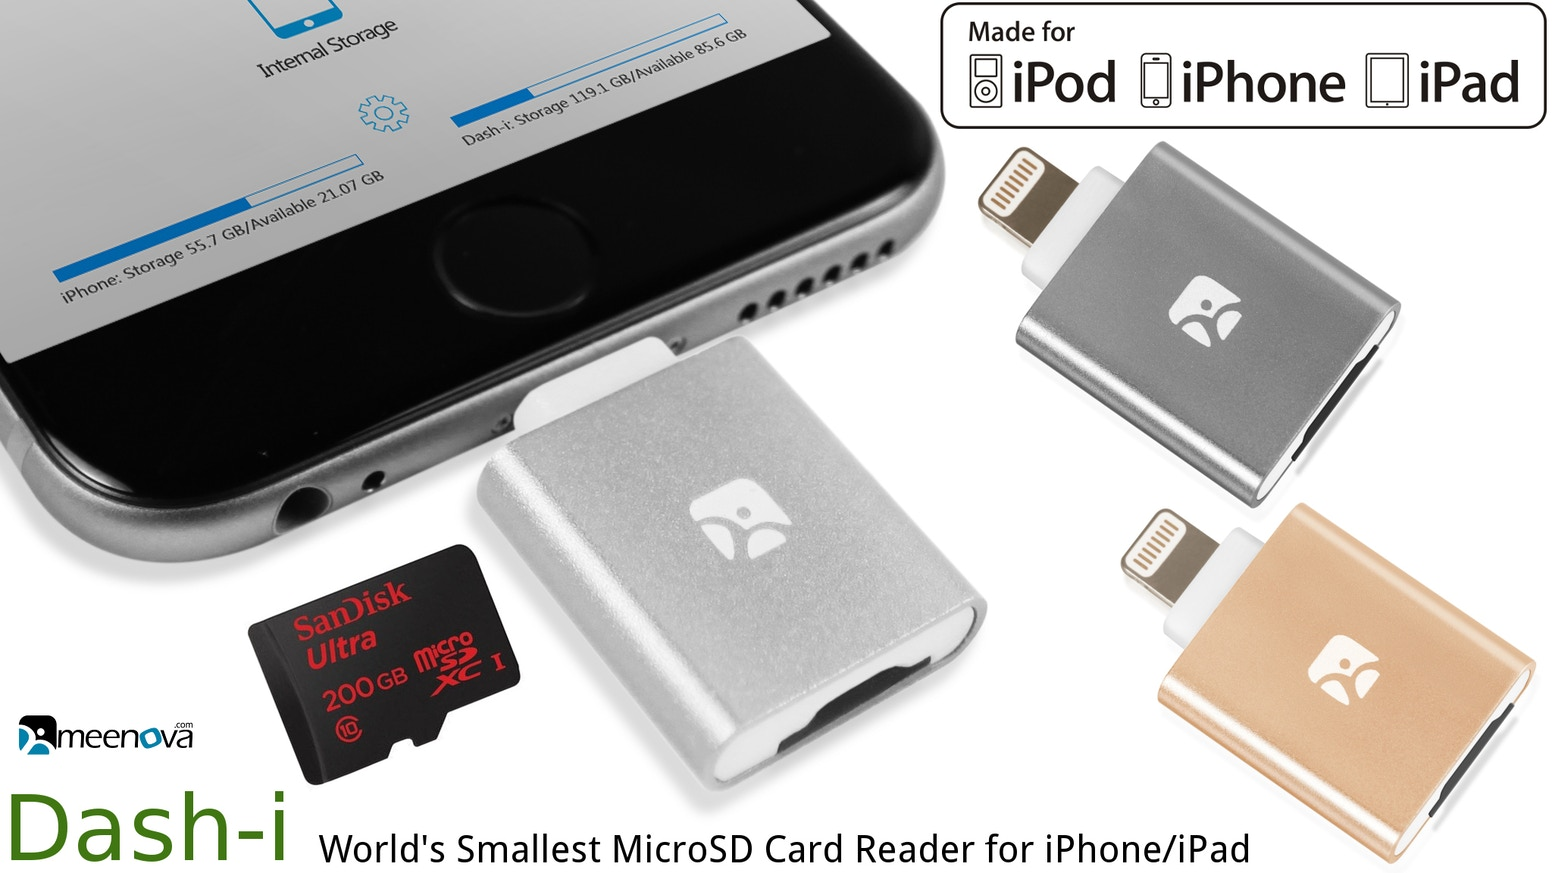 Add unlimited external storage to your iPhone/iPad: compact, elegant, tough aluminum, concurrent charging. The smallest & the best.